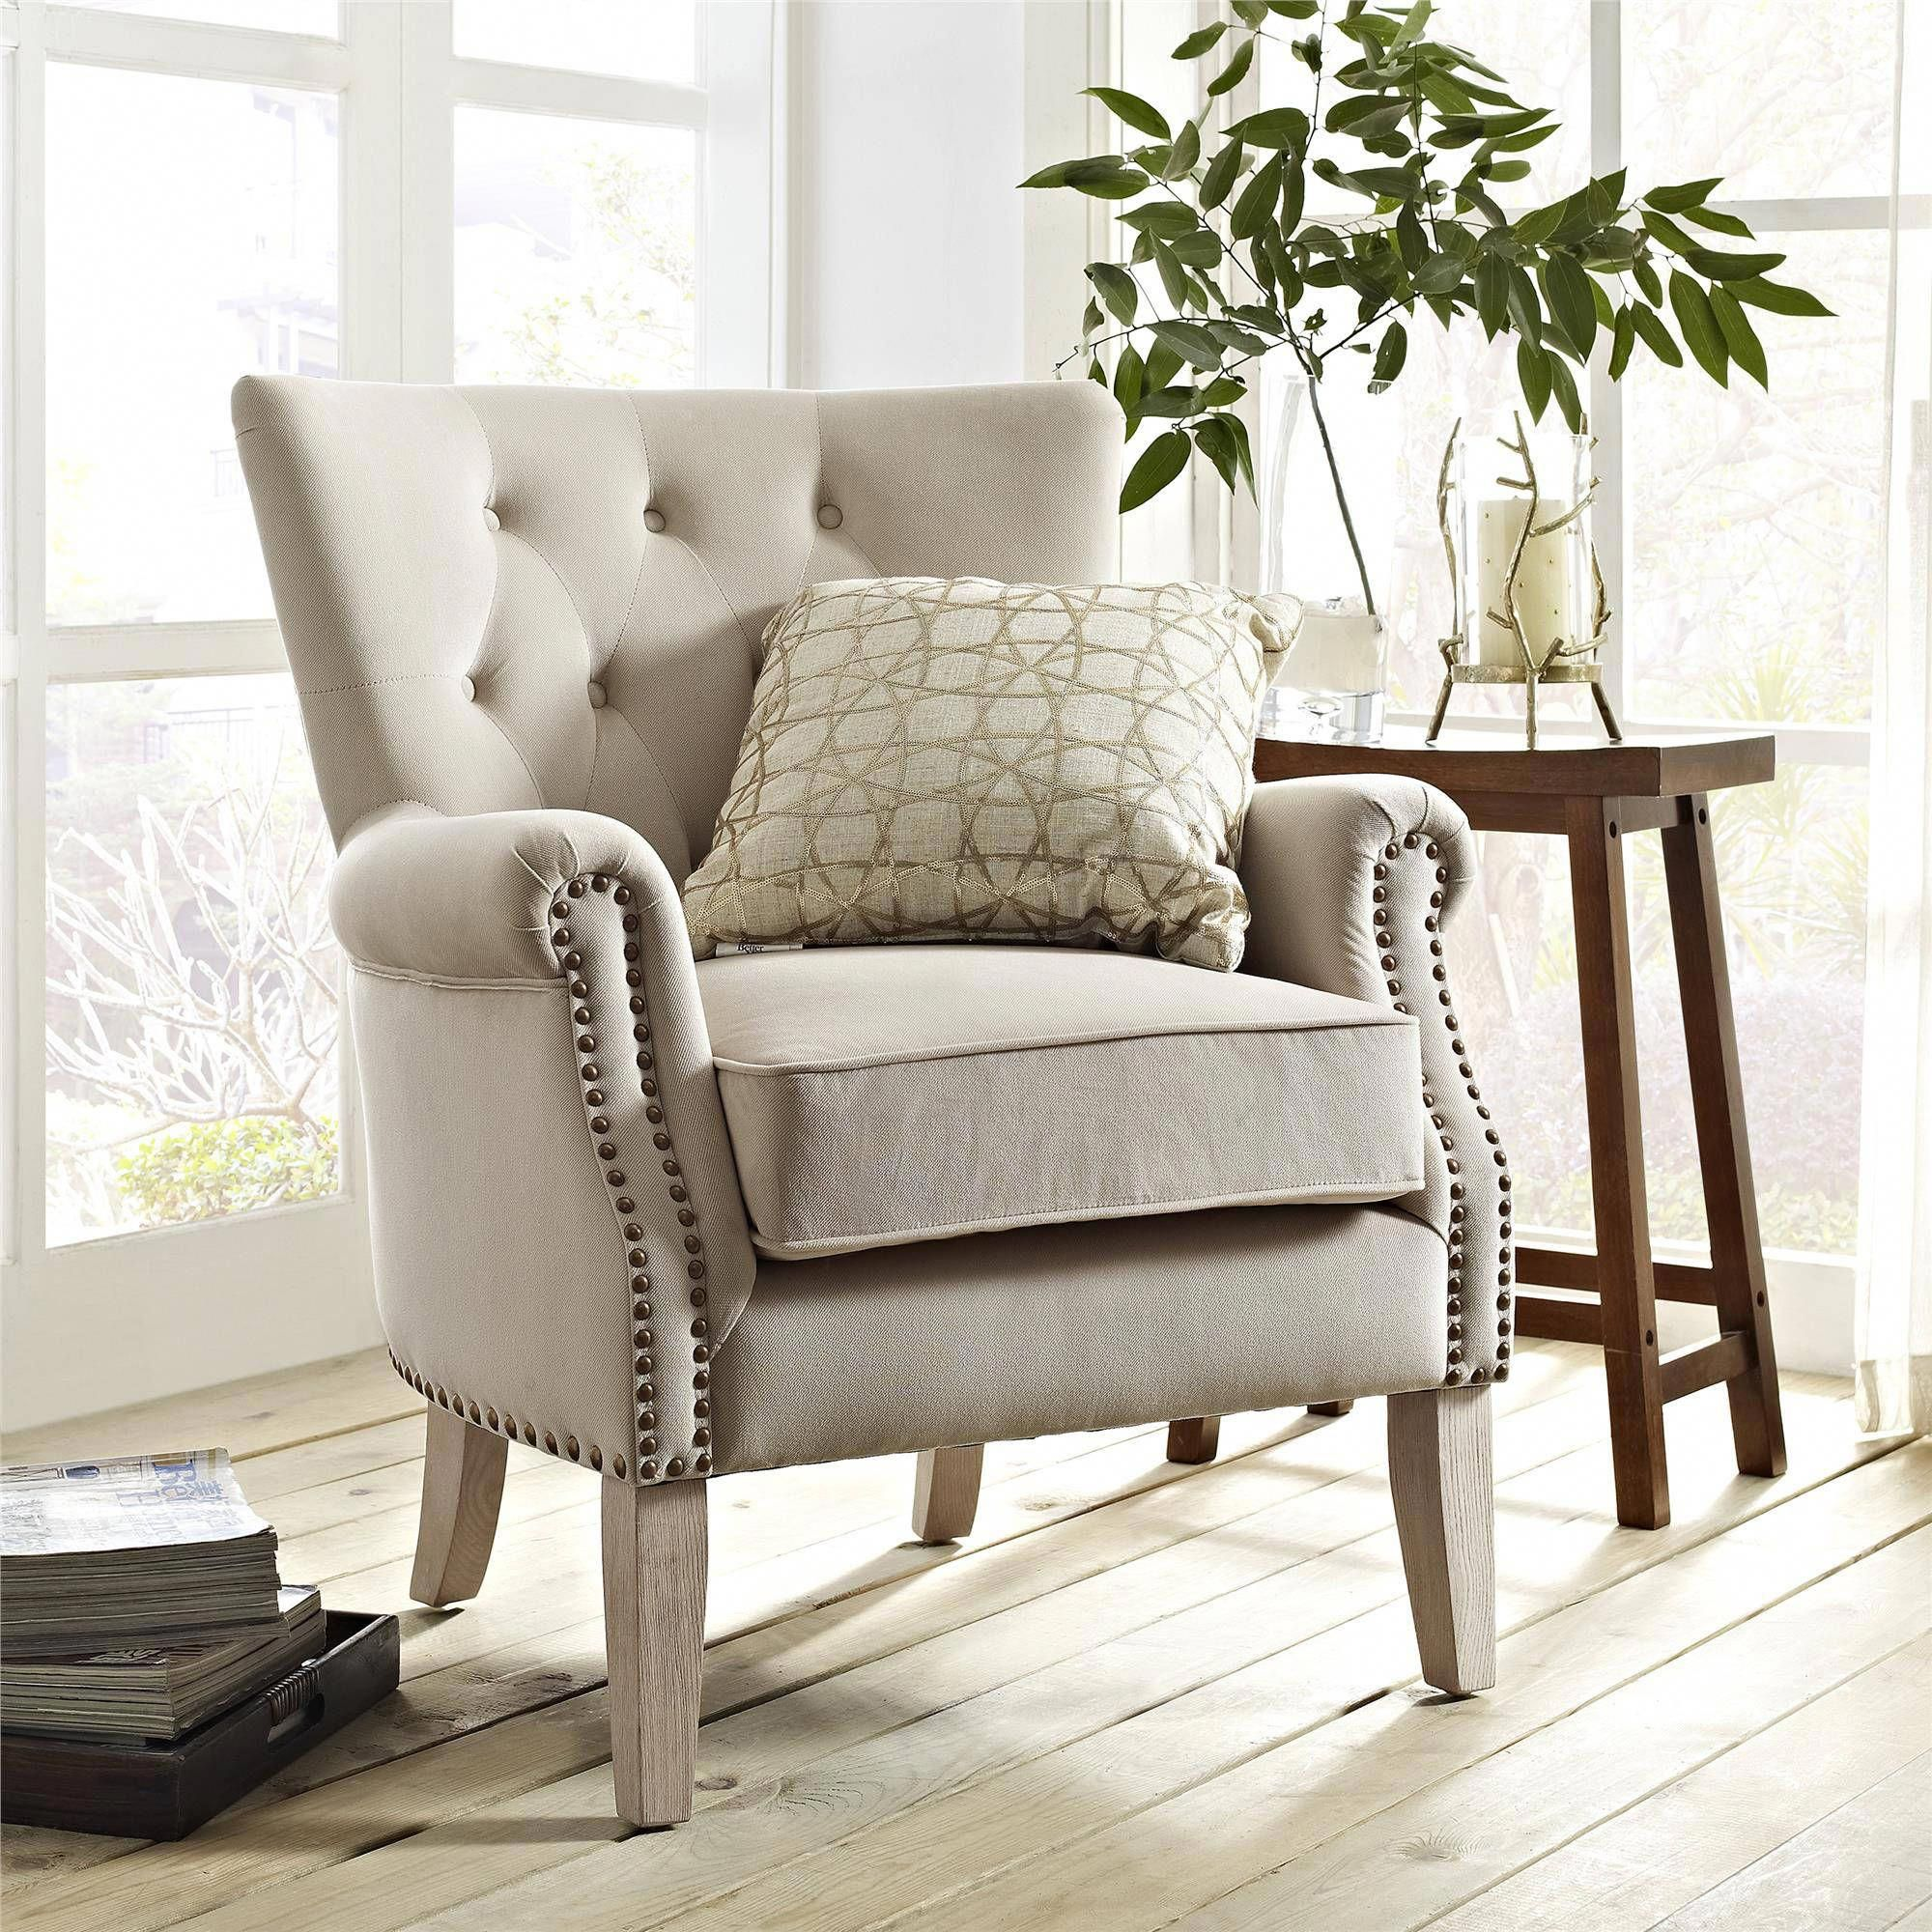 Better Homes Gardens Accent Chair Living Room Home Office Beige Walmart Com In 2020 Accent Chairs For Living Room Accent Chair Bedroom Living Room Chairs